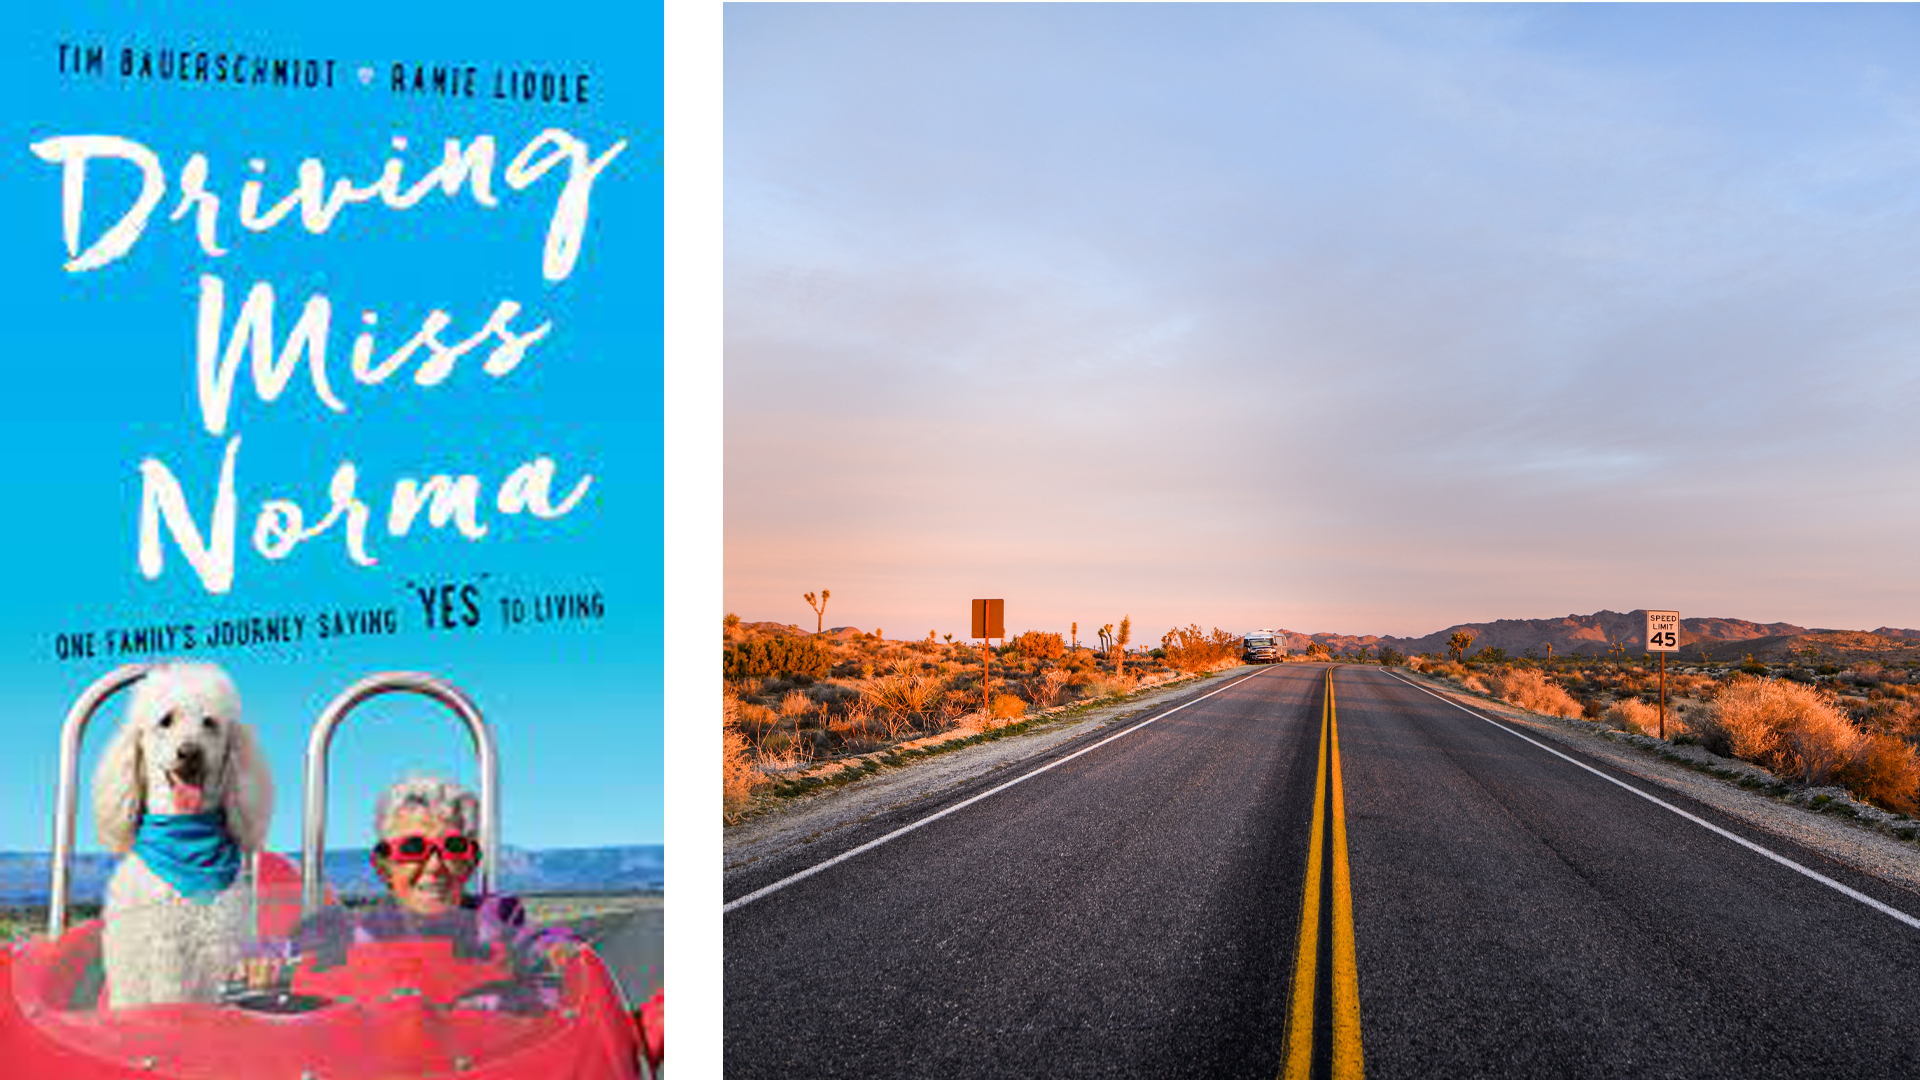 Driving Miss Norma book cover and road during sunset